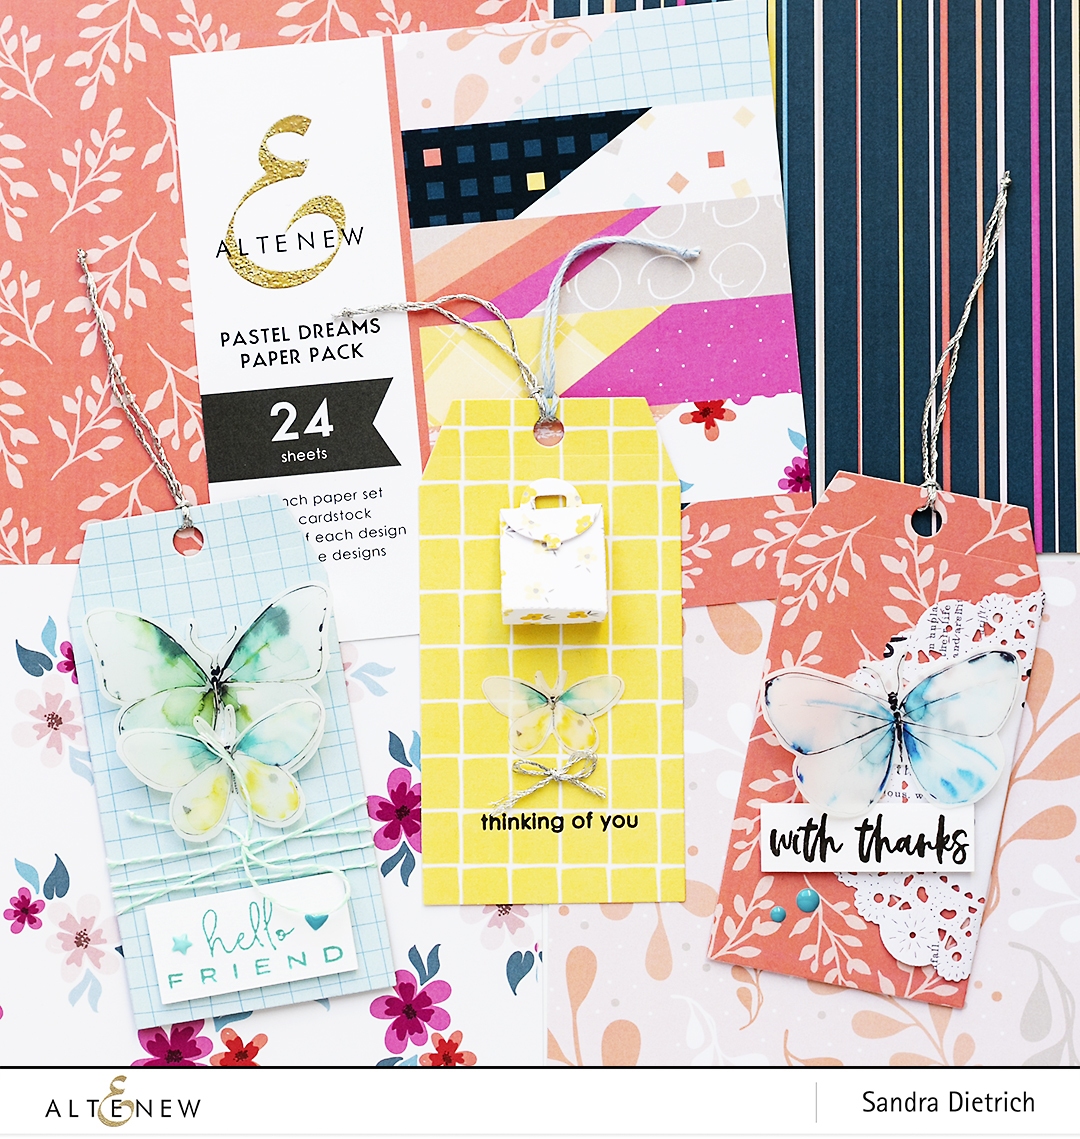 Pastel Dreams Paper Pack Gift Tags @SandraDietrich for @Altenew